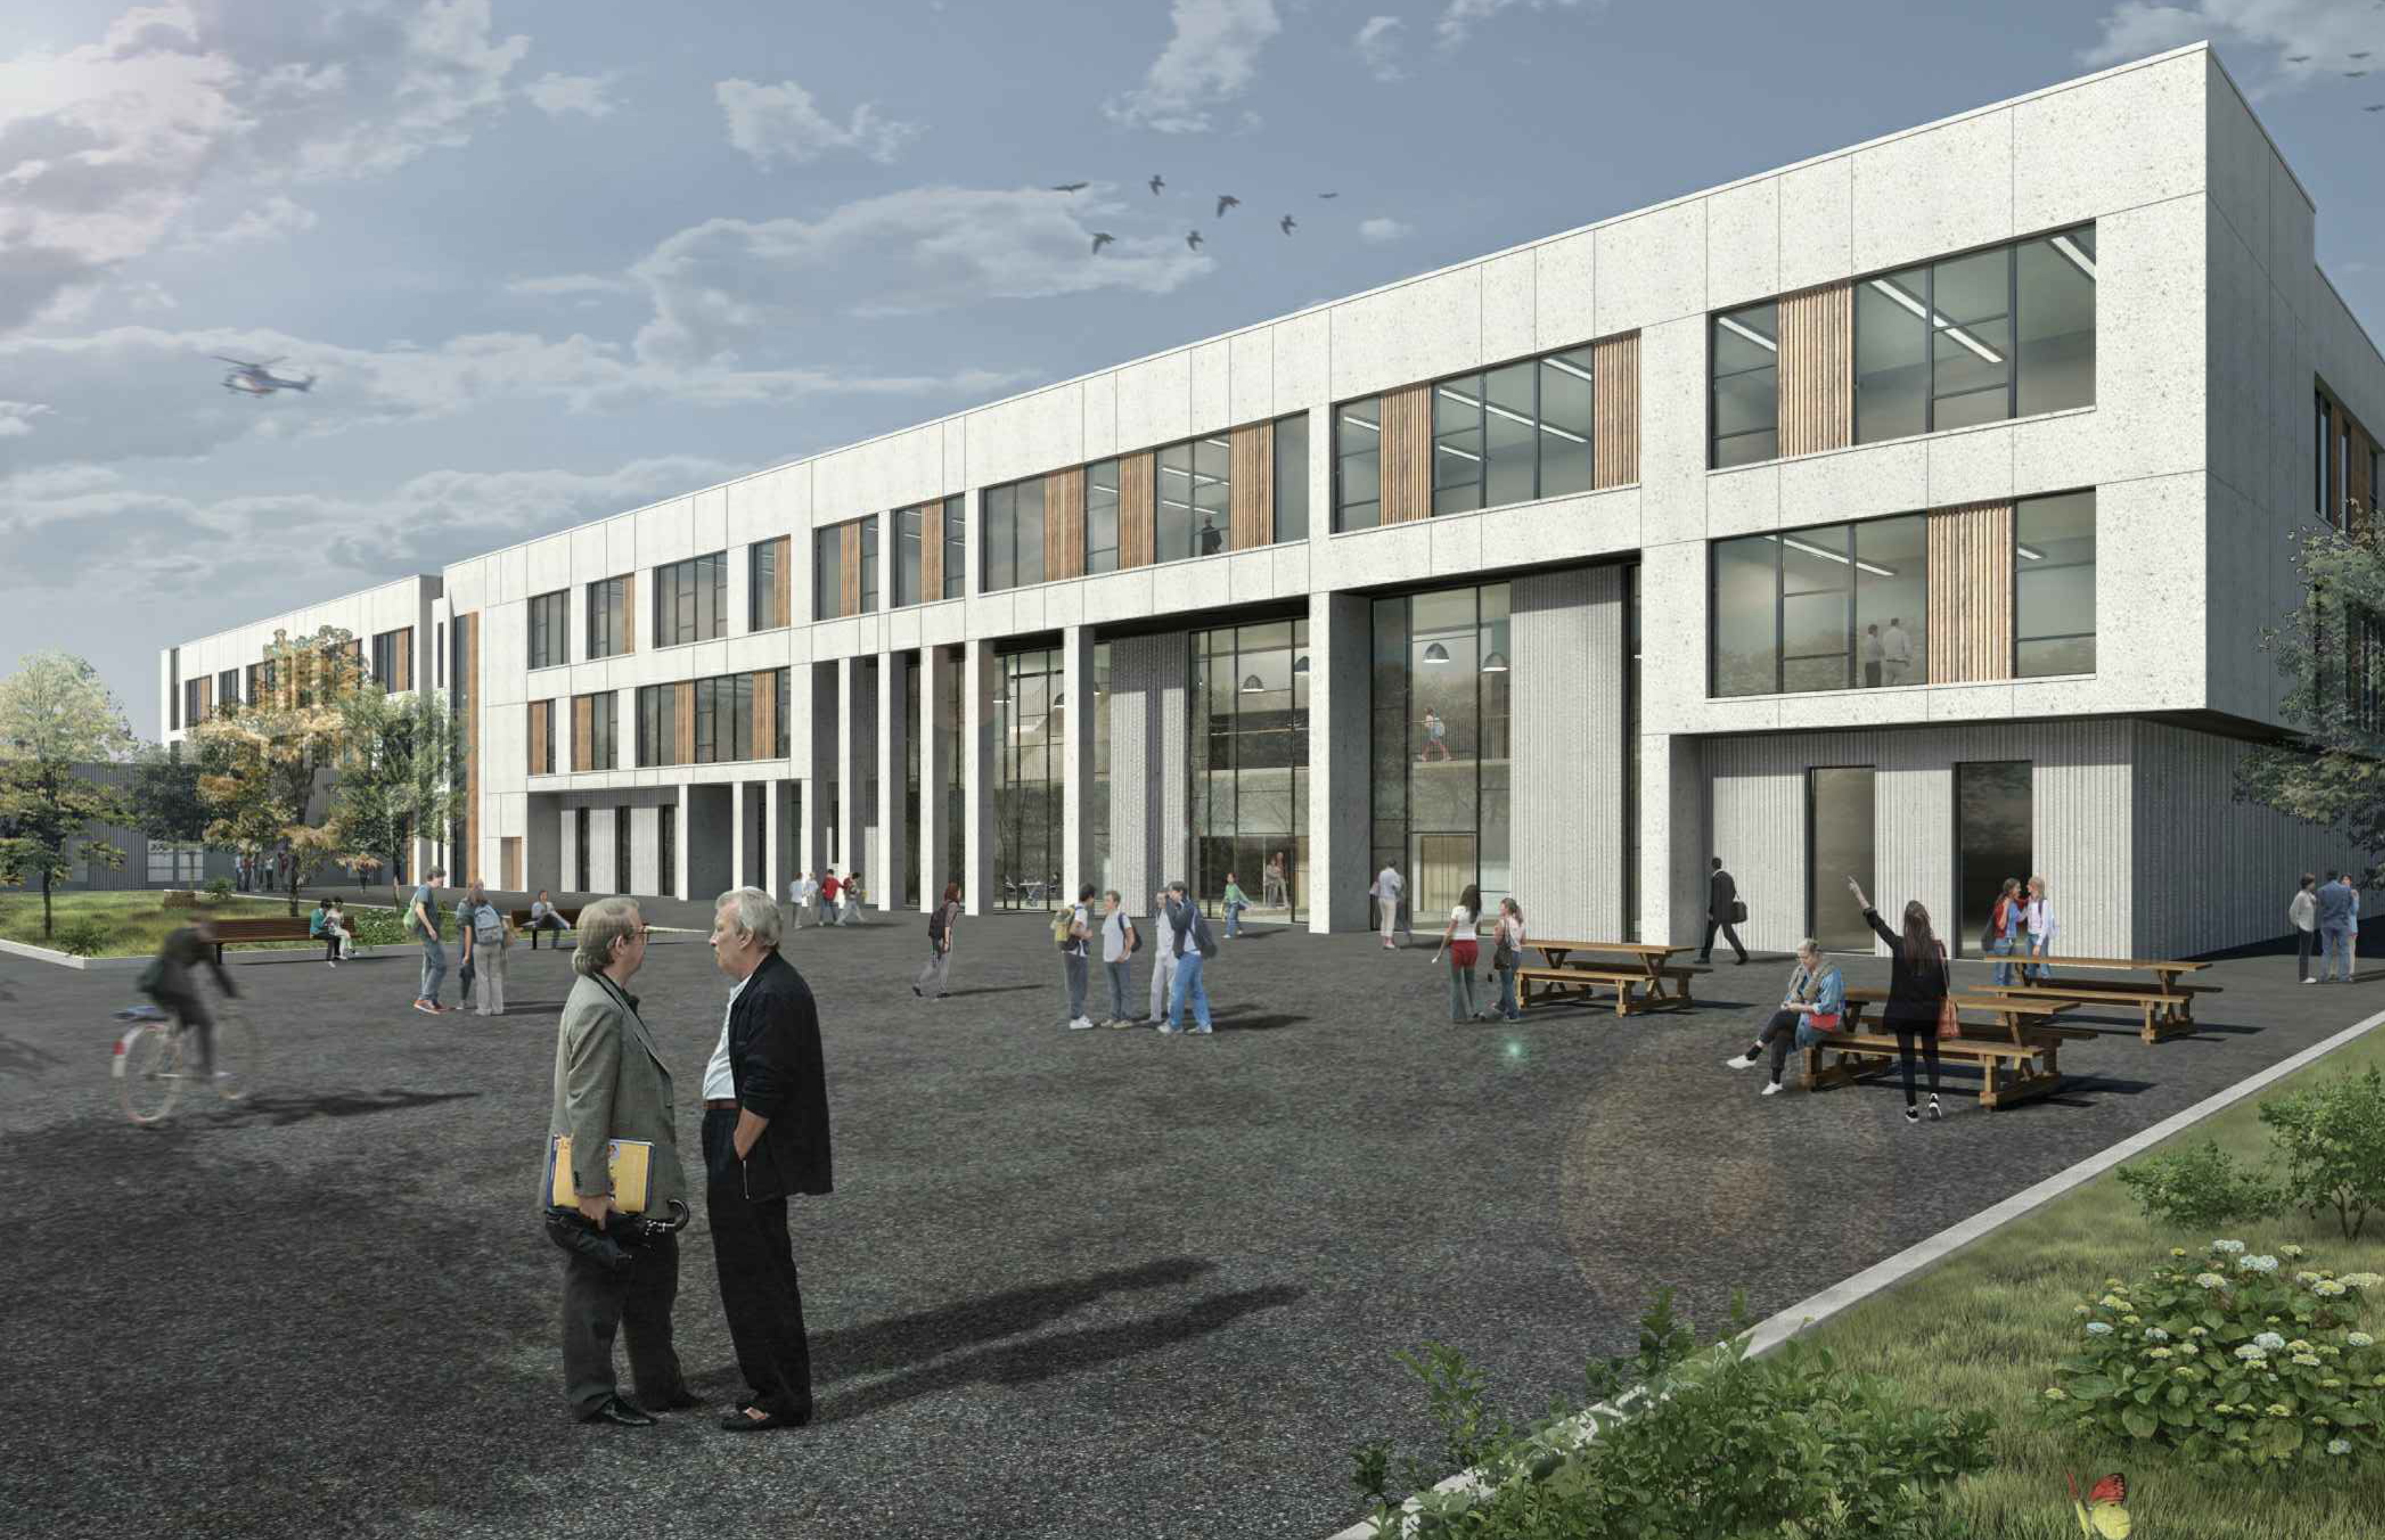 An artist's impression of the proposed new secondary school. Picture courtesy of JM Architects